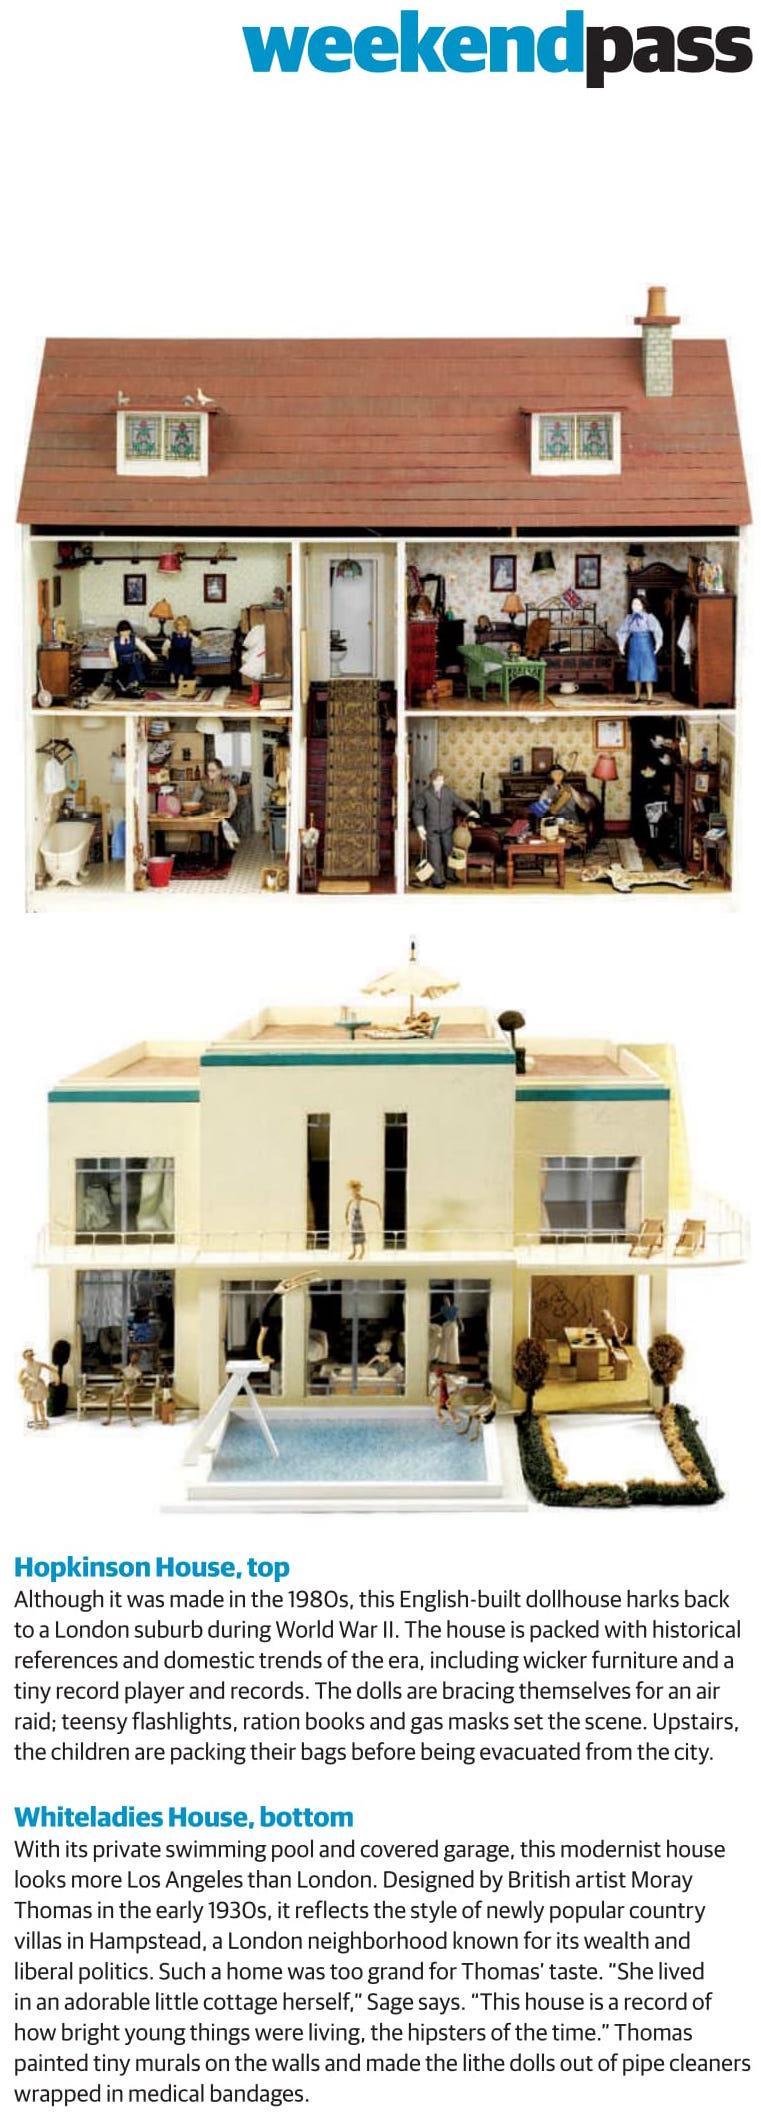 https://www.washingtonpost.com/express/wp/2016/05/26/see-how-the-british-elite-decorated-their-dollhouses-at-the-building-museum